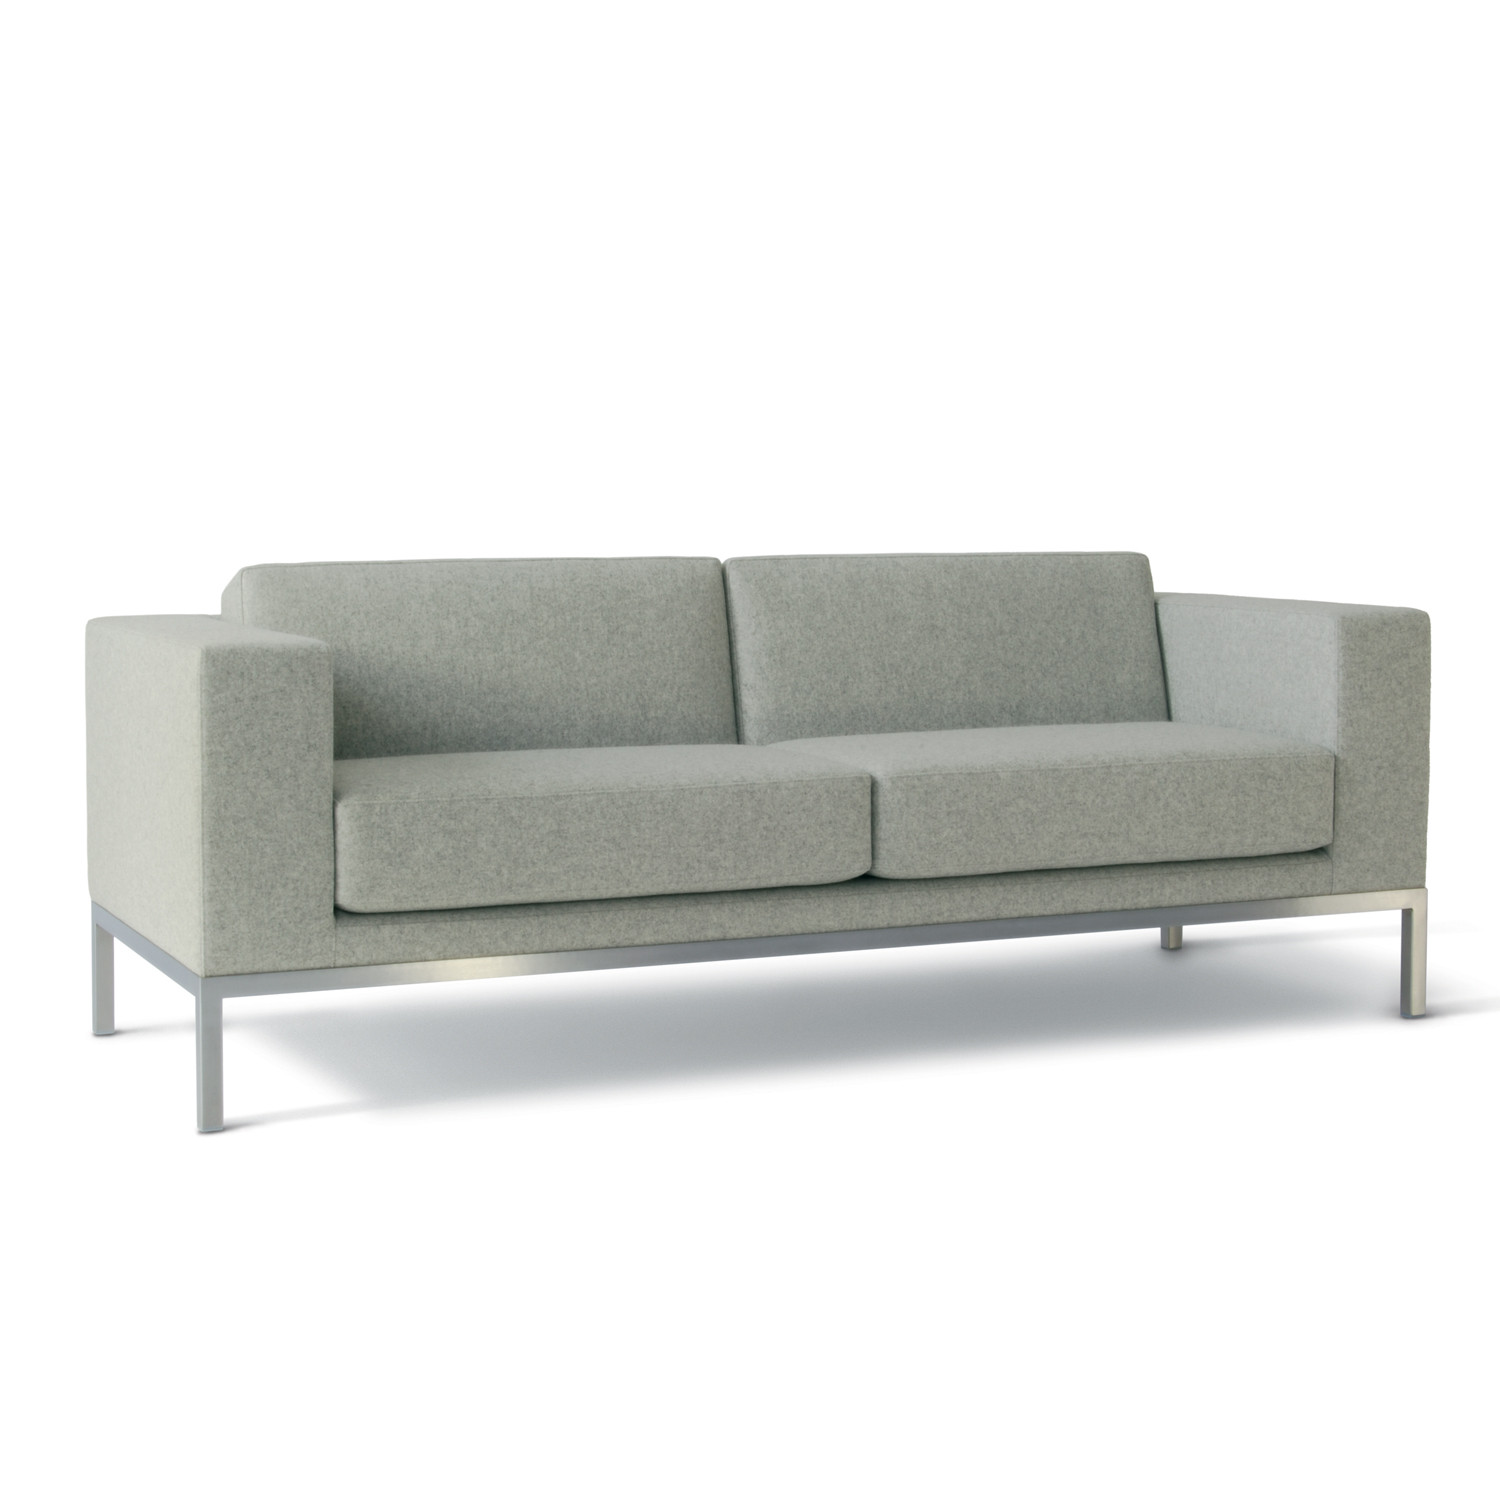 HM25 Soft Seating